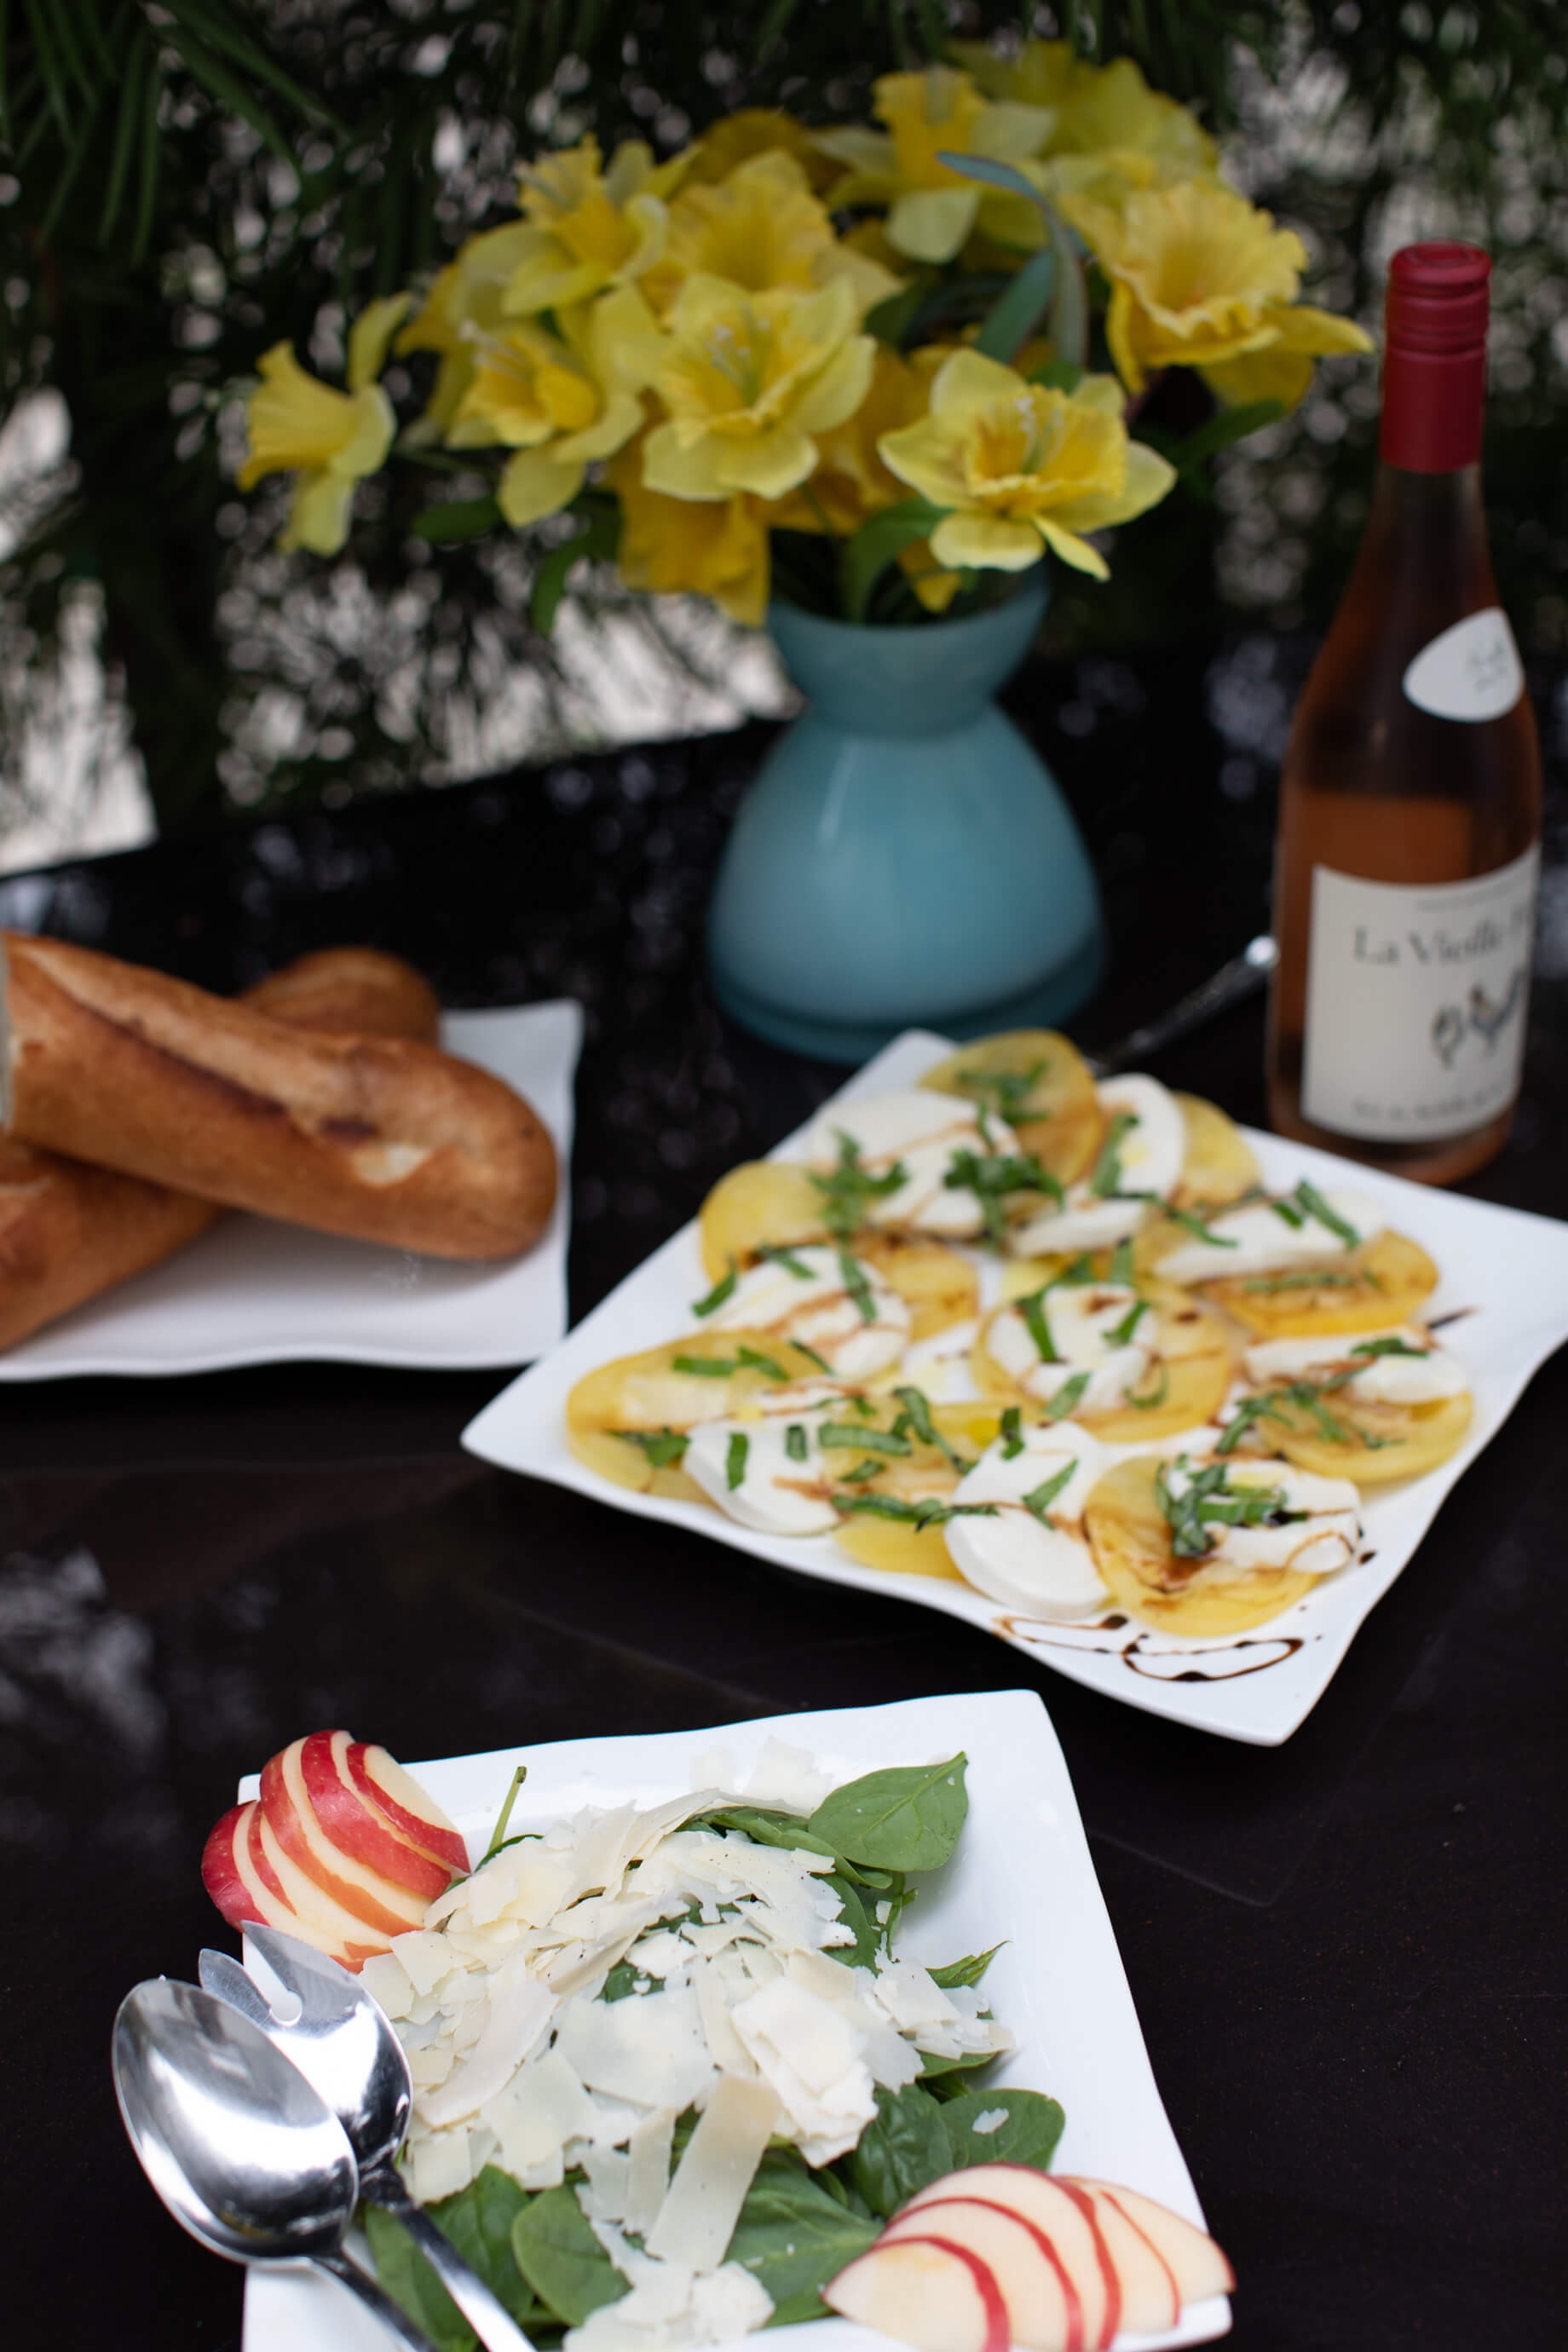 caprese salad, spinach salad with parmesan and apple, and baguette- M Loves M @marmar